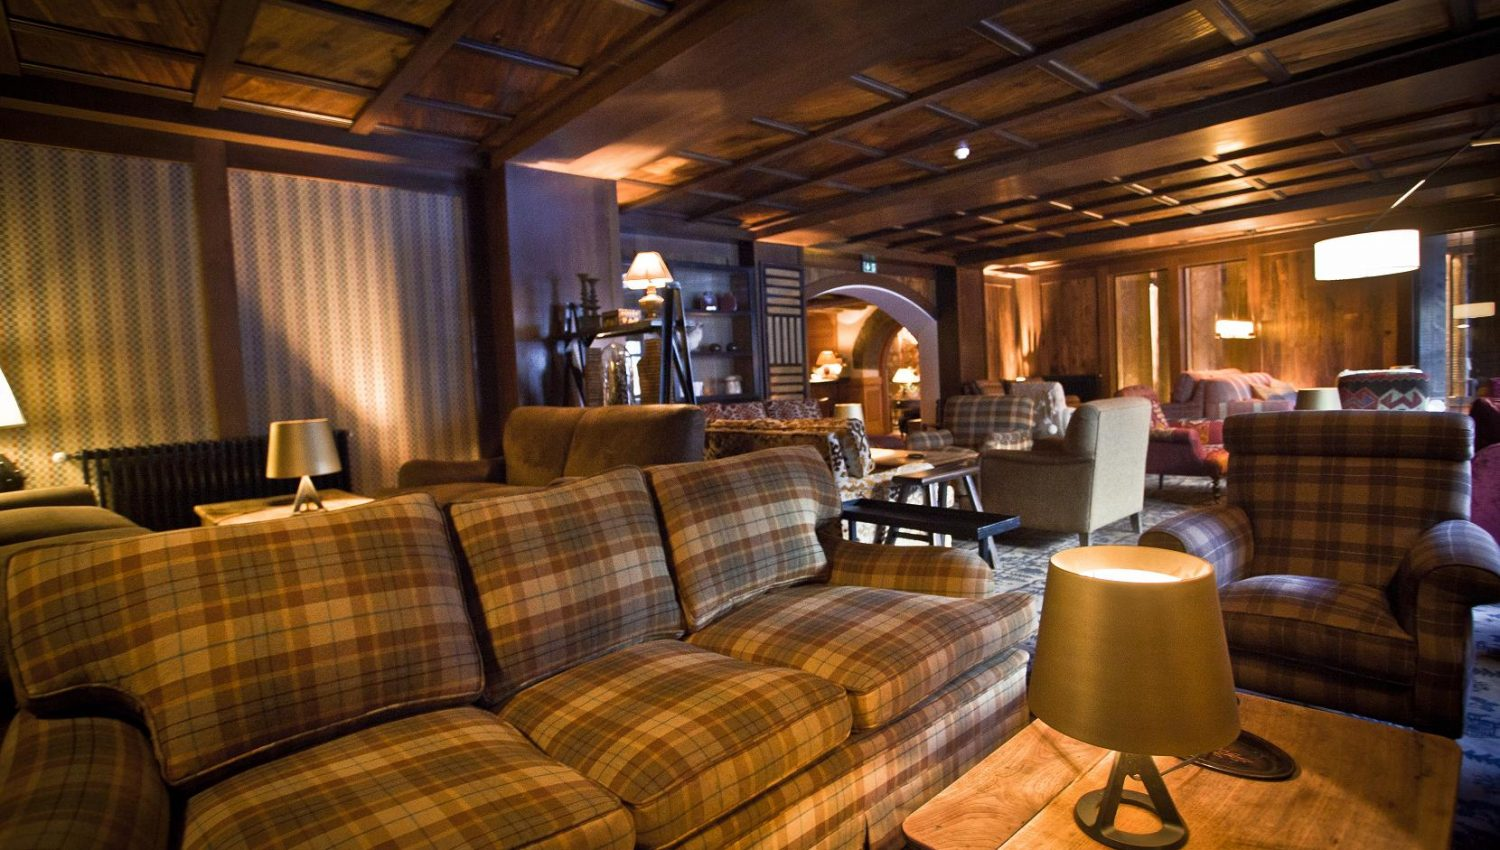 val-d-isere-hotel-le-blizzard-7